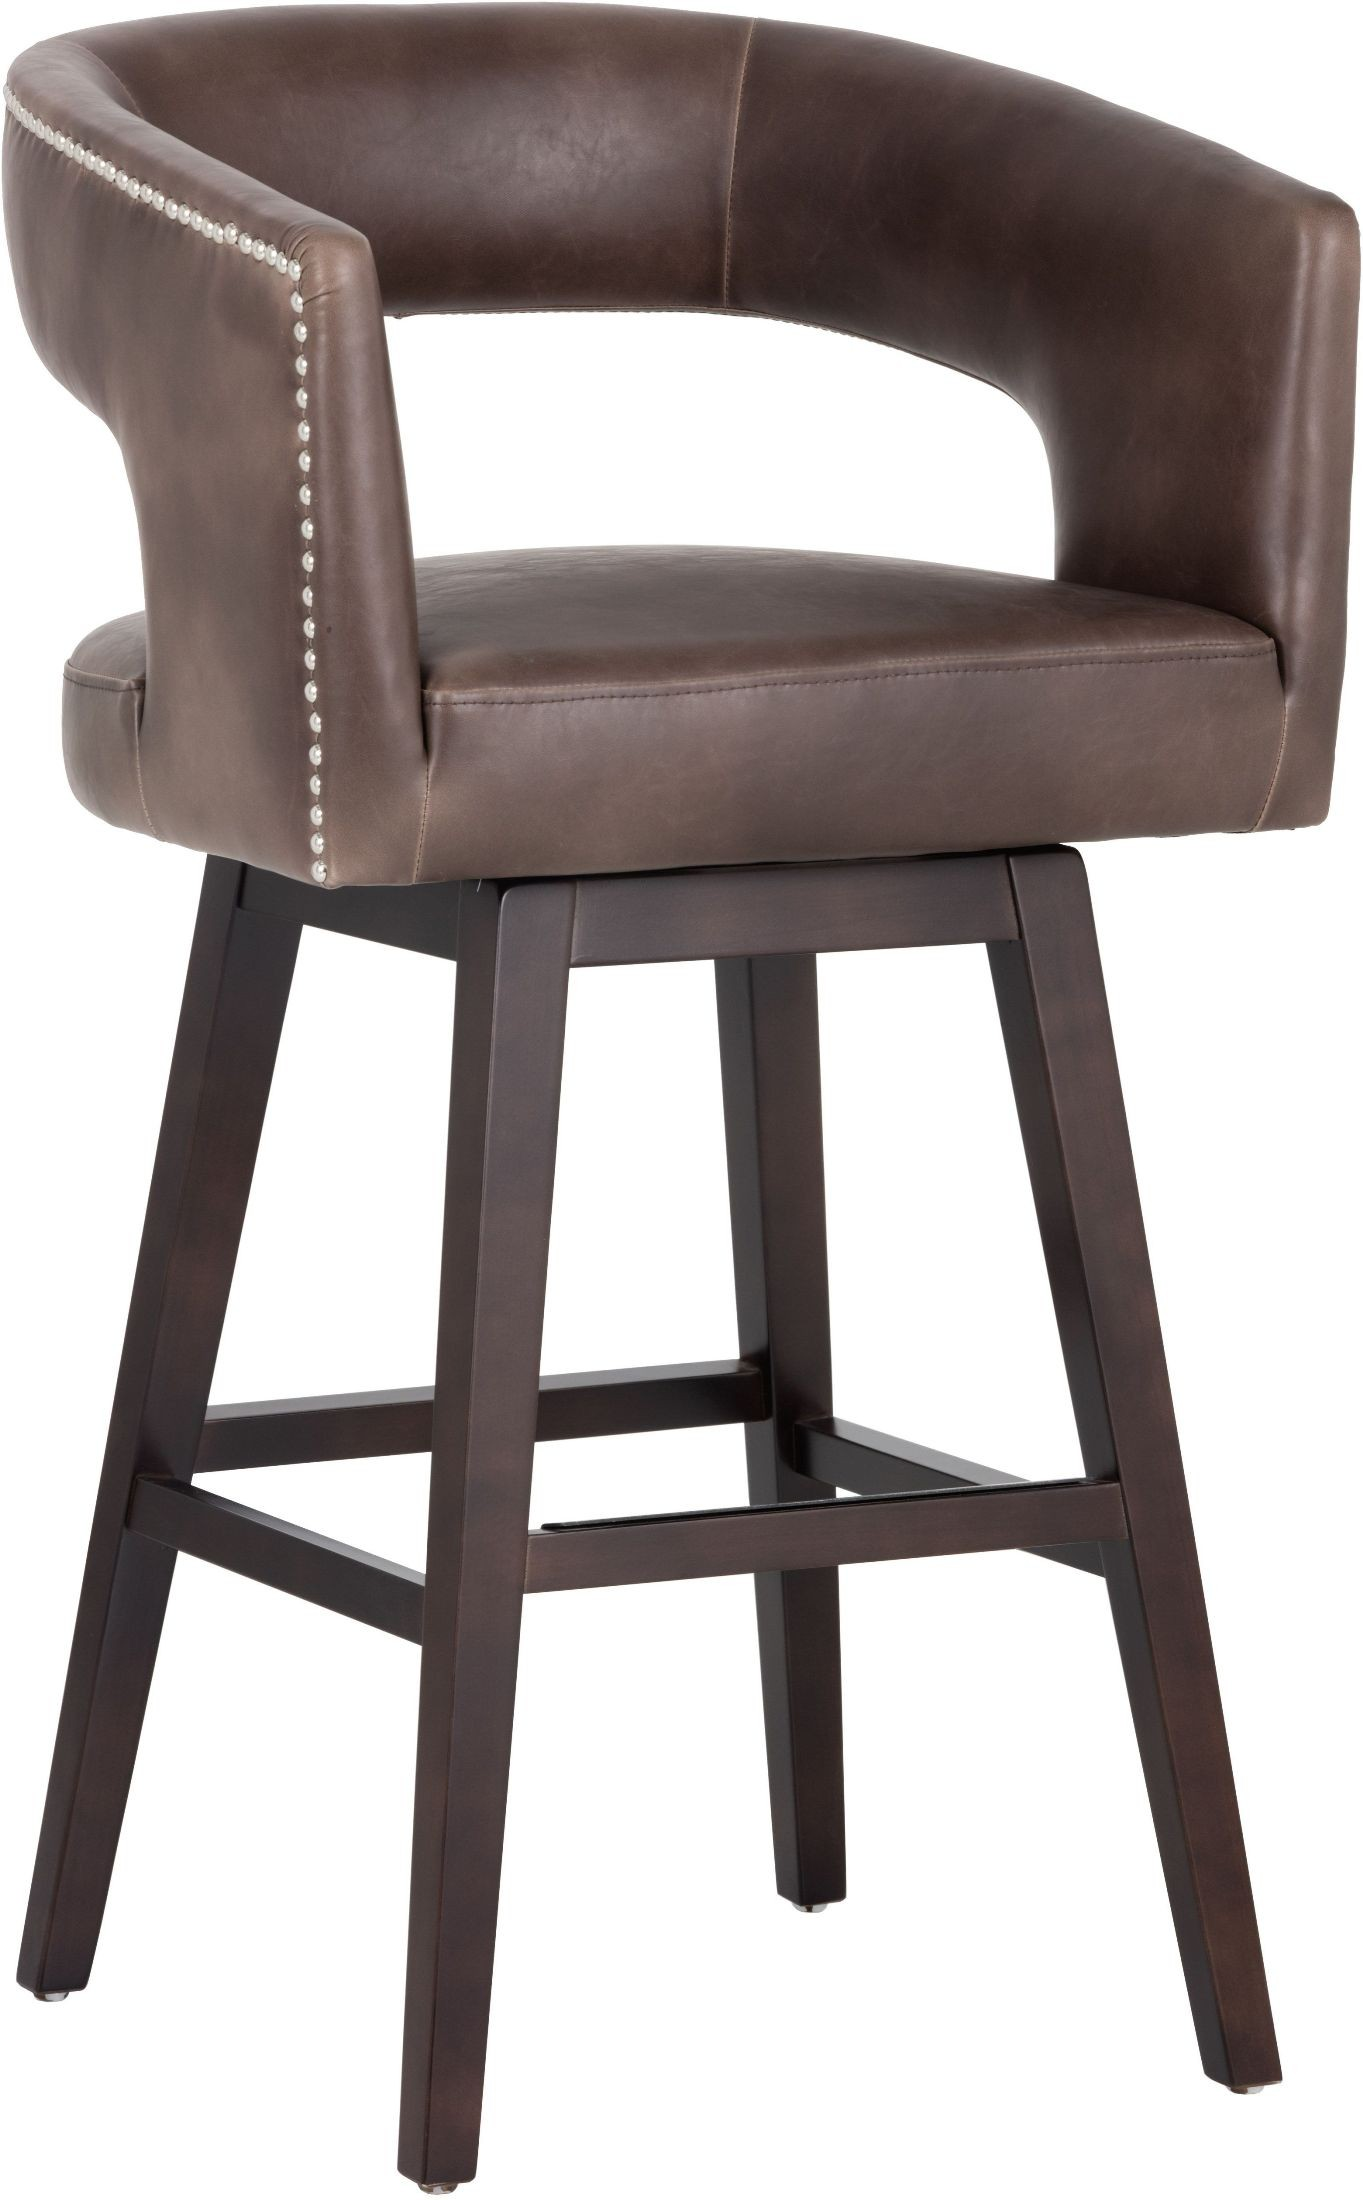 Draco Havana Dark Brown Barstool From Sunpan Coleman